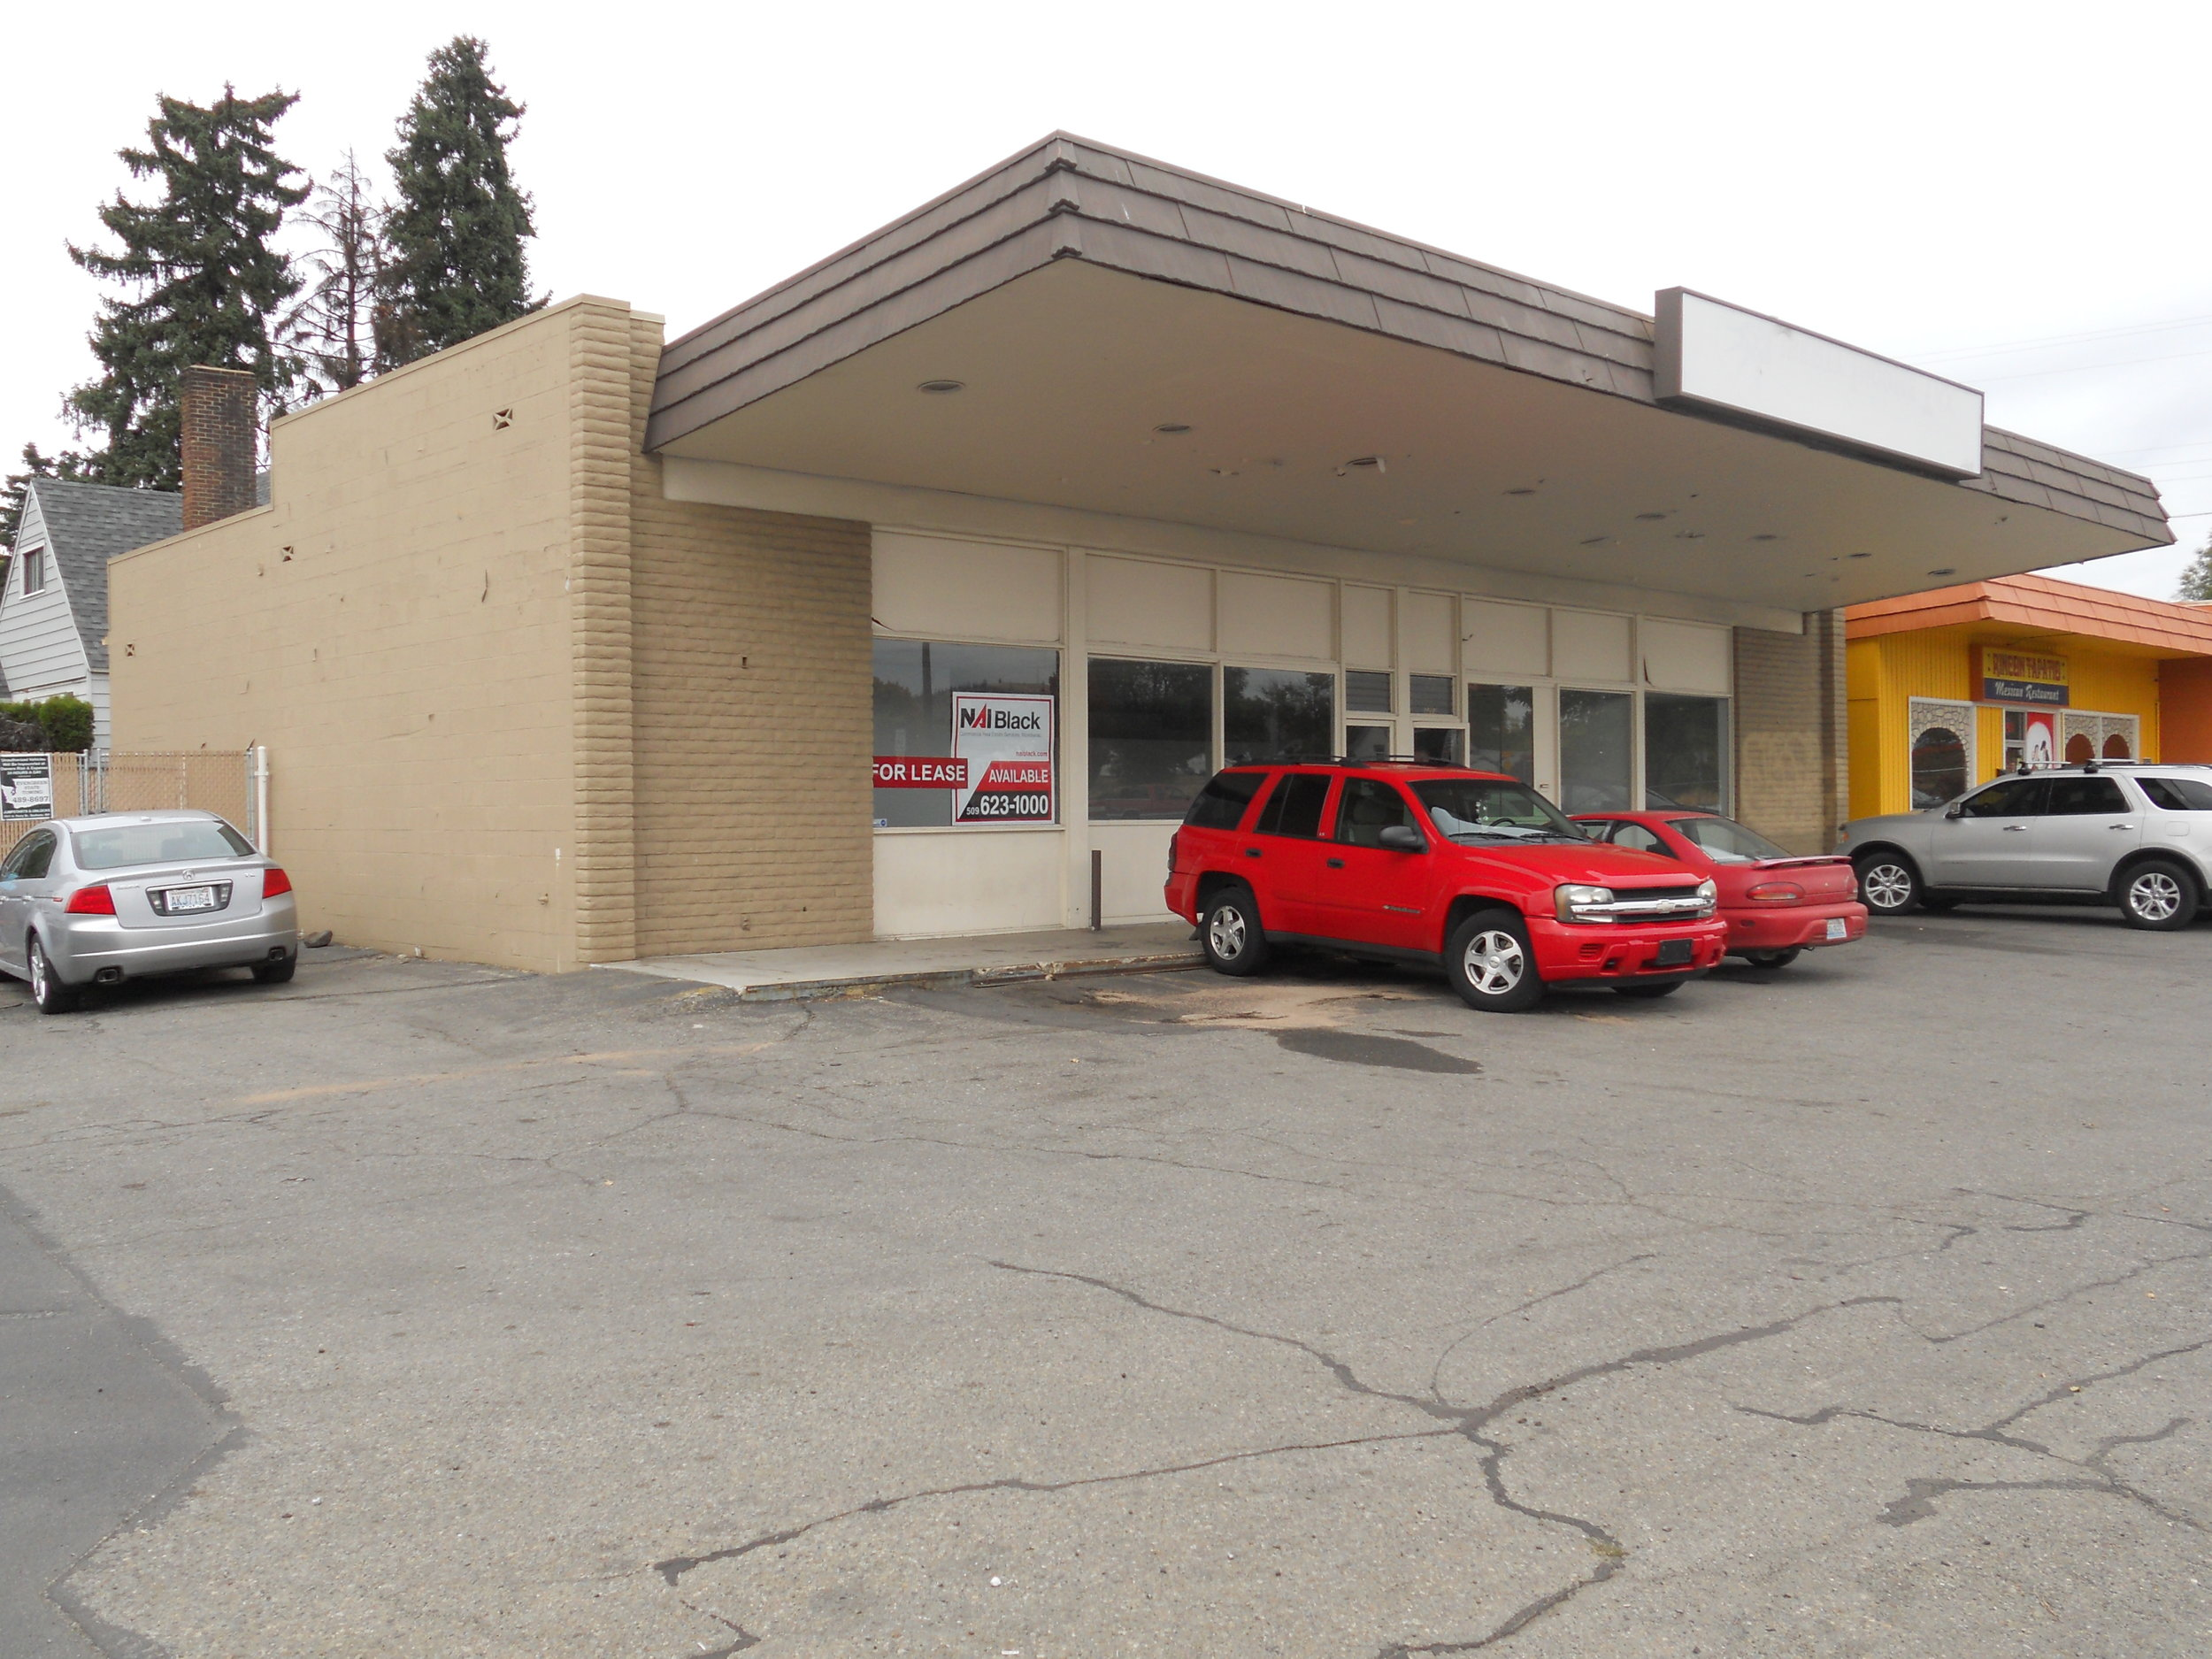 Our brand new Inland Empire store is located in the old Circle K store at the intersection of E. Euclid Avenue and N. Market Street. The address is 3203 N. Market Street, Spokane WA.